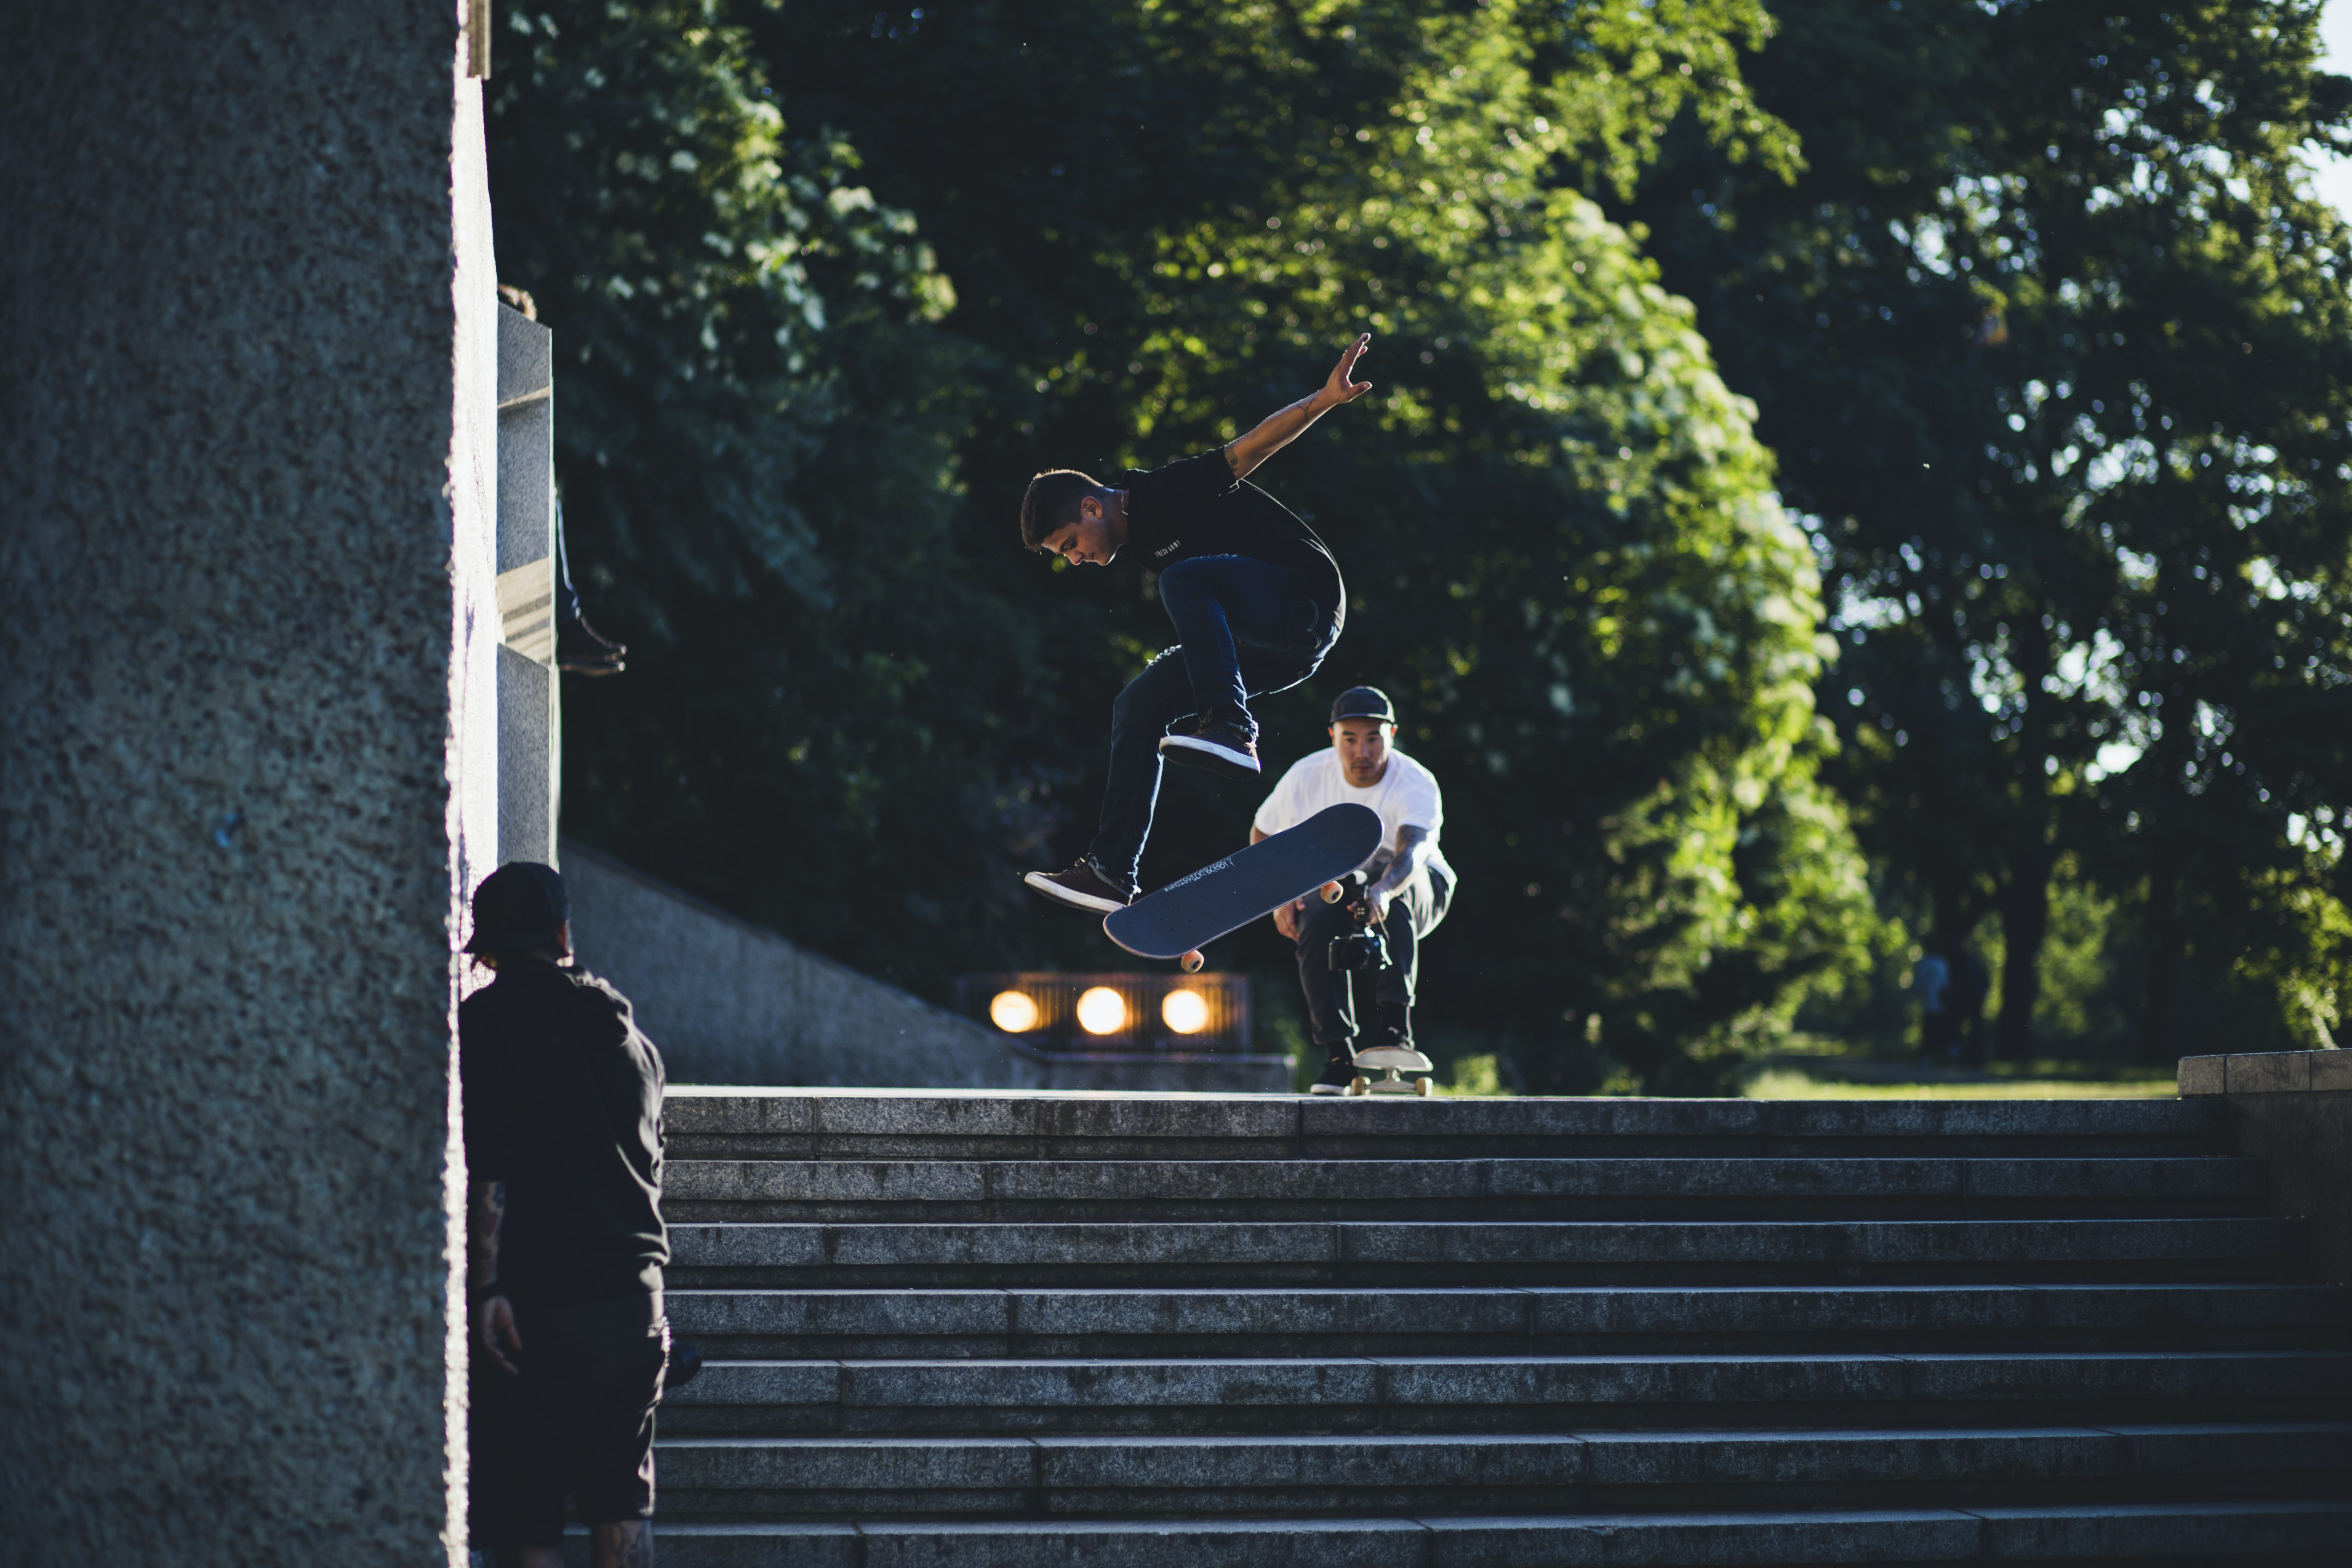 Skateboarders do trick jumps down stairs